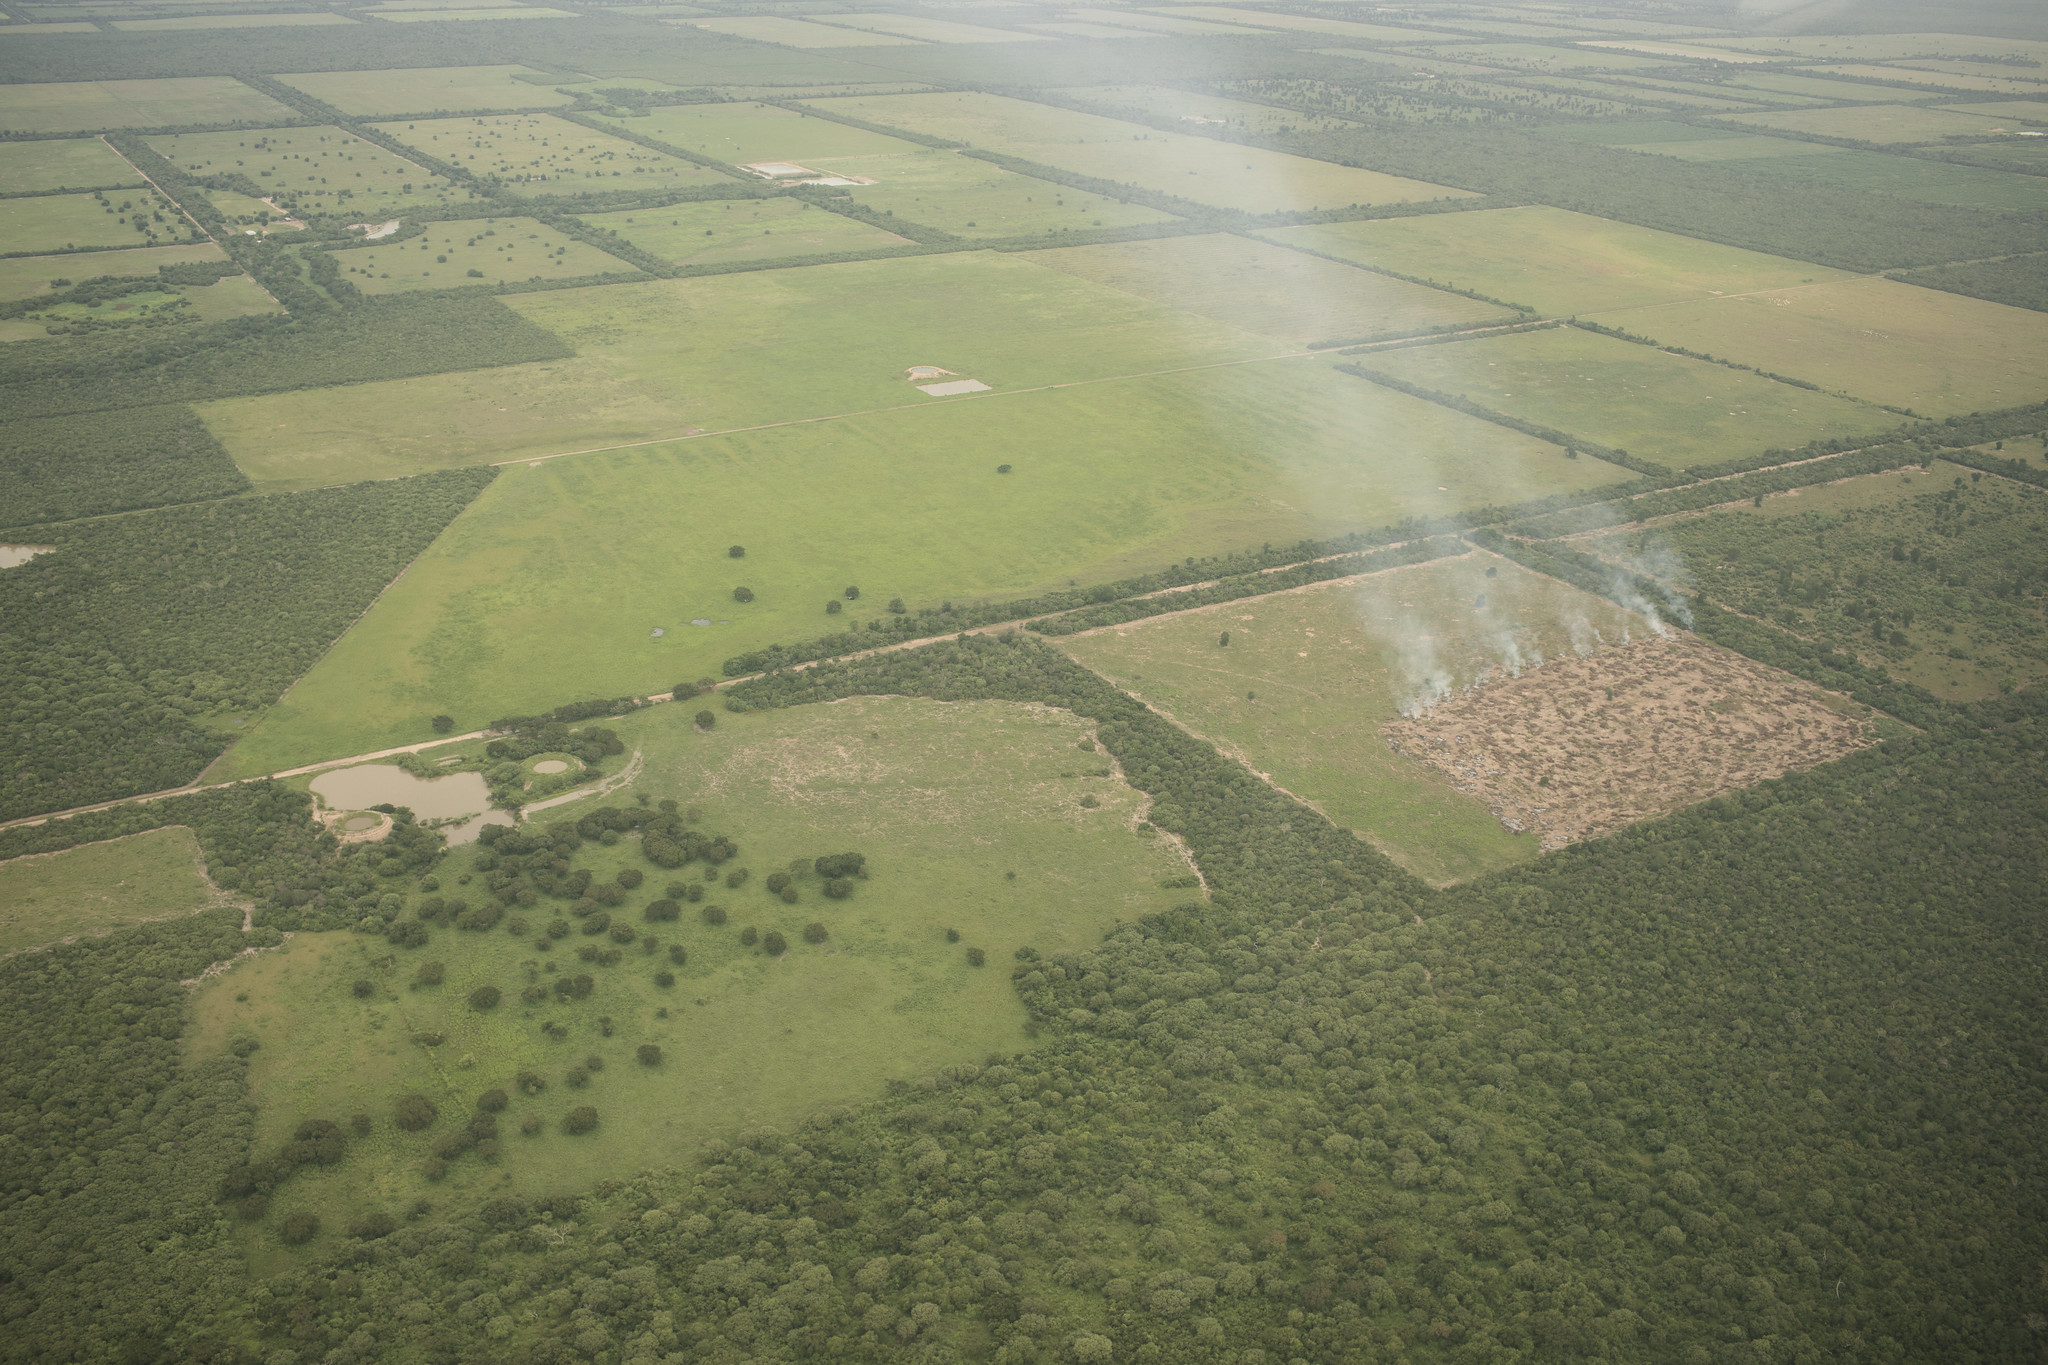 <p>Fires used to clear land for pasture in Paraguay's Gran Chaco region can be seen from an airplane. Photo by Jordi Ruiz Cirera/WRI.</p>